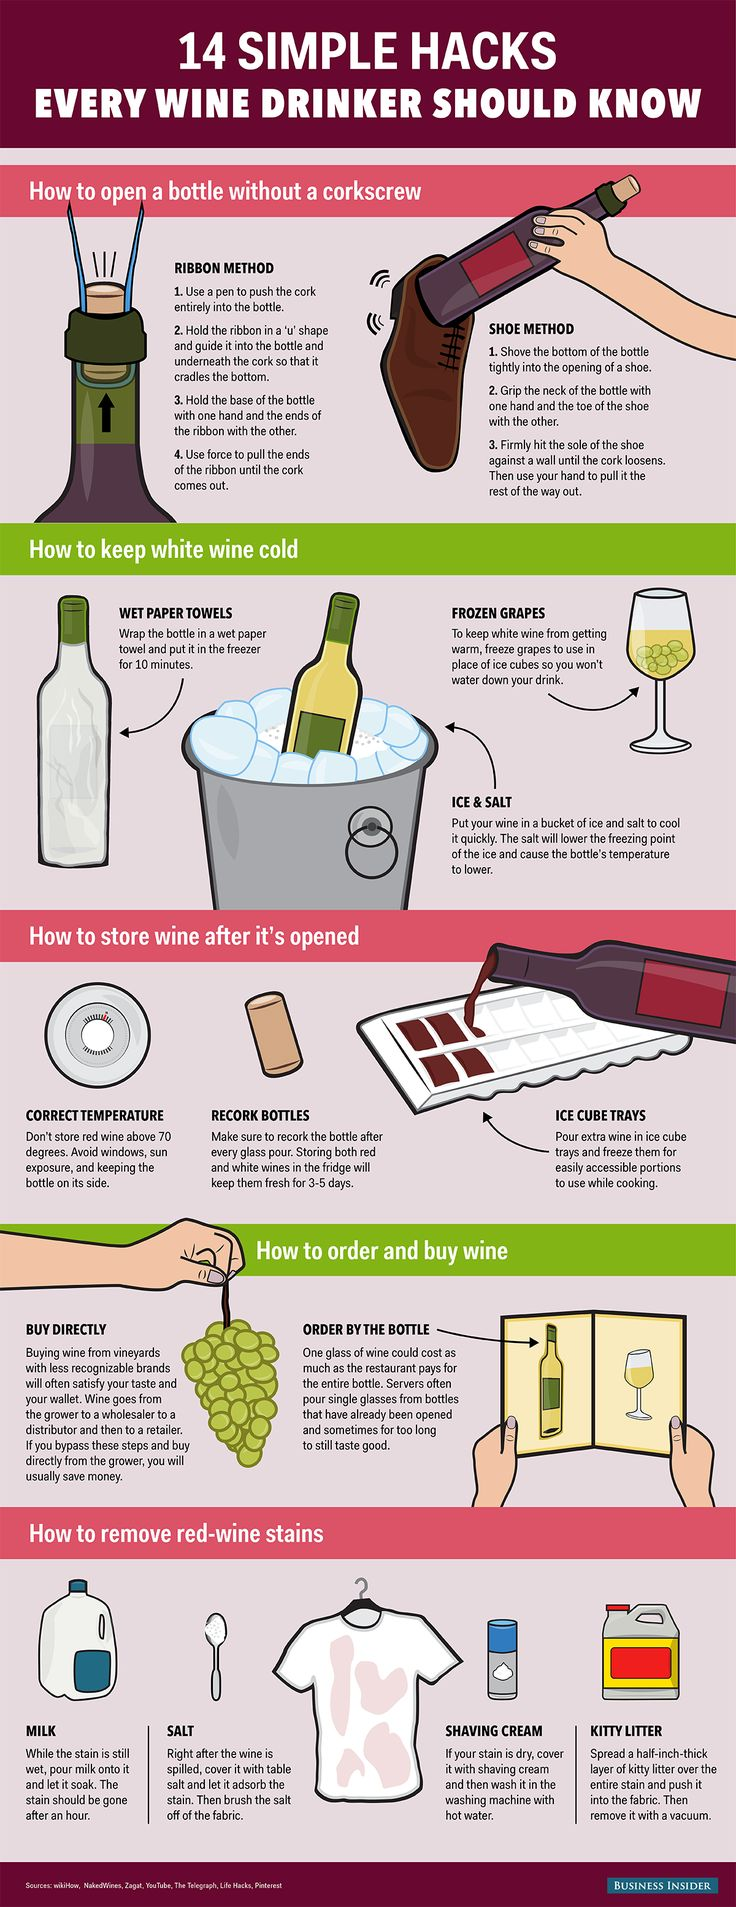 14 Wine Hacks #wine #wineeducation #winetasting